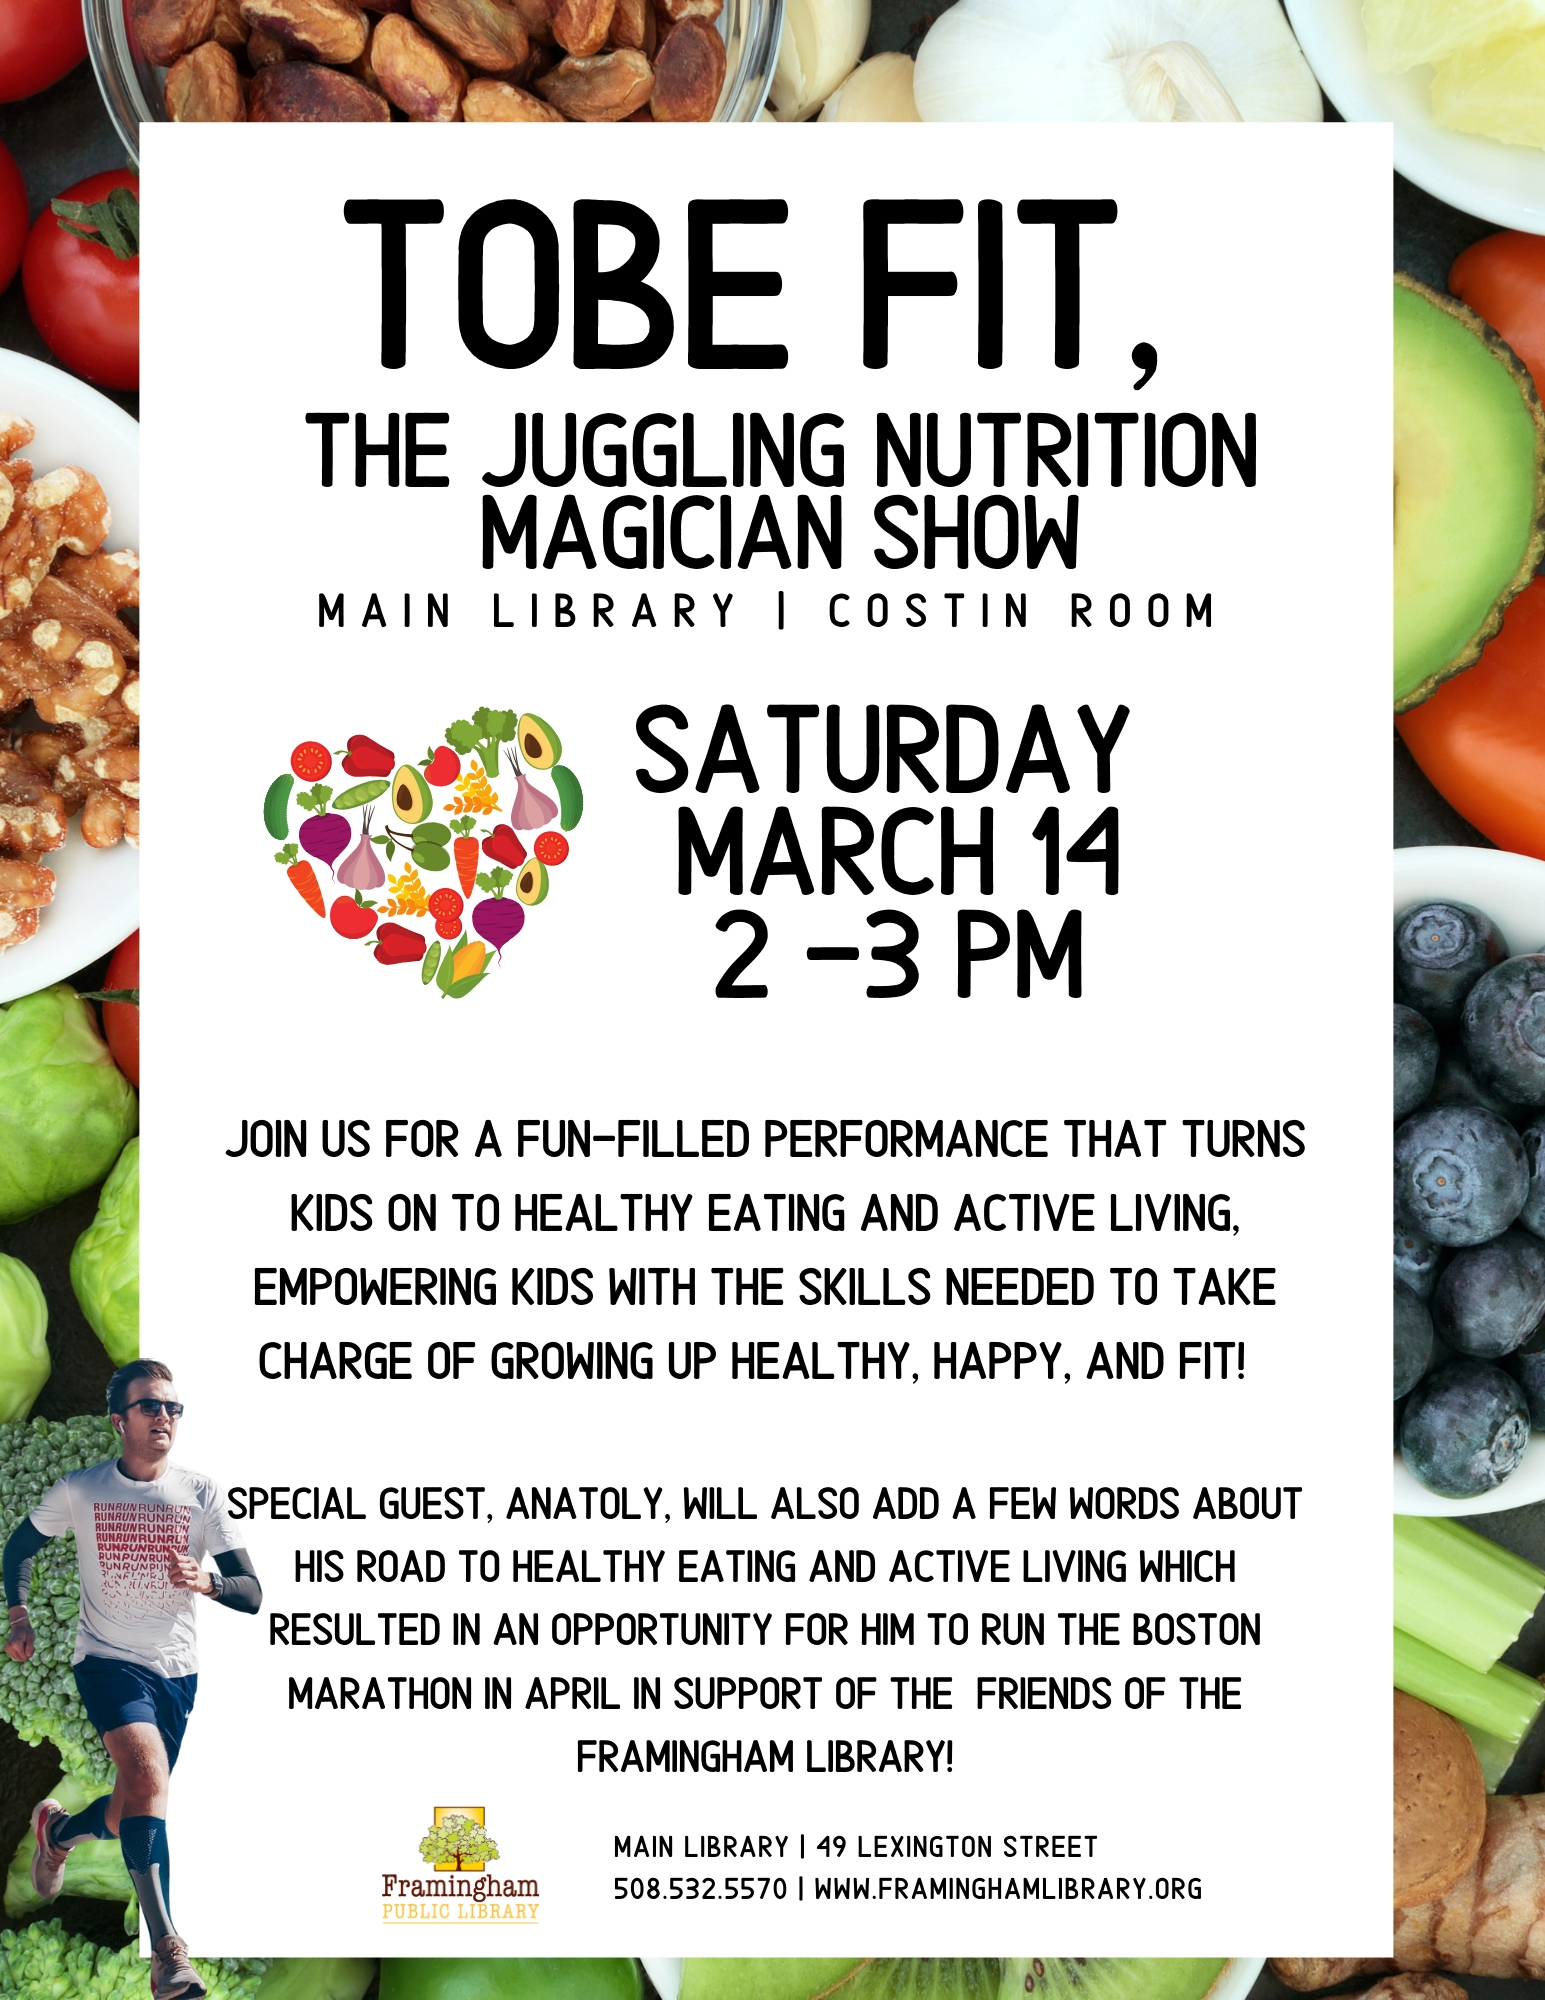 ToBe Fit, the Juggling Nutrition Magician Show thumbnail Photo